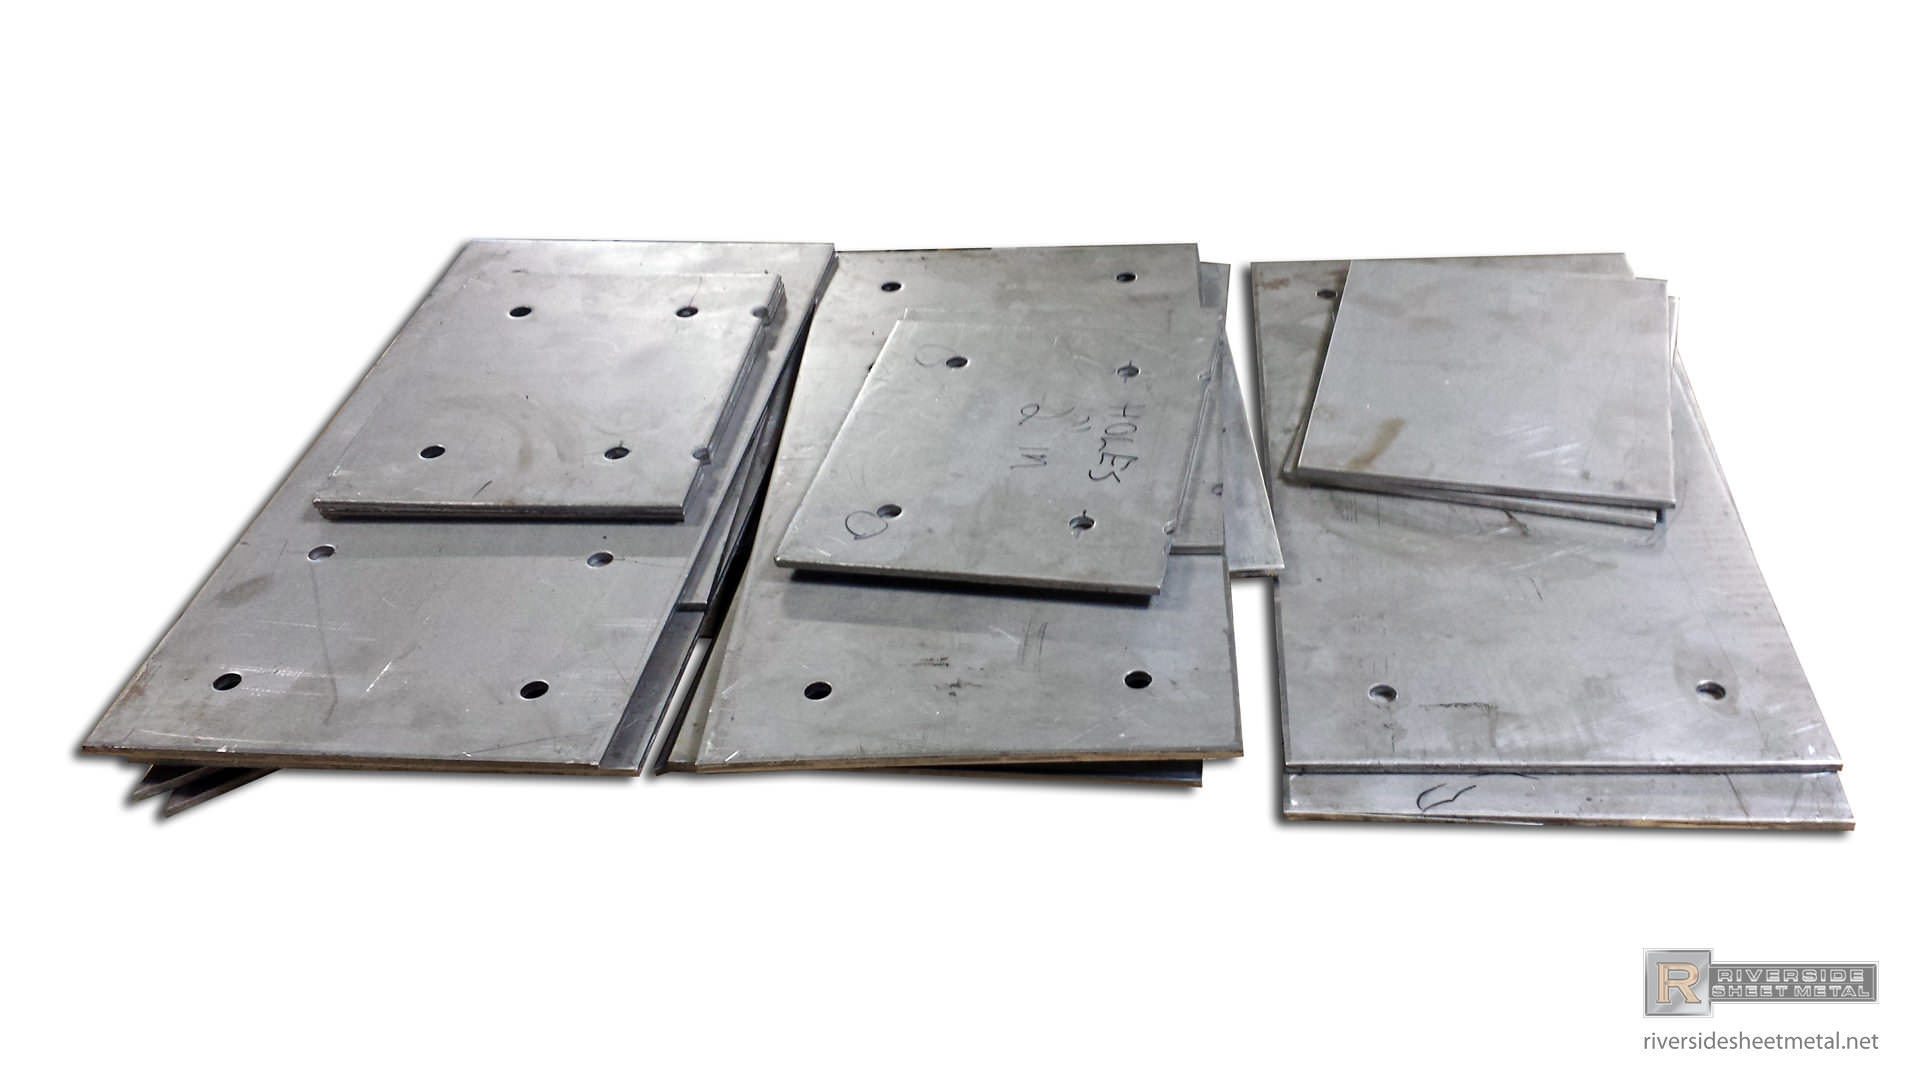 Steel Plates With Pre Drilled Holes For Parts Fabrication